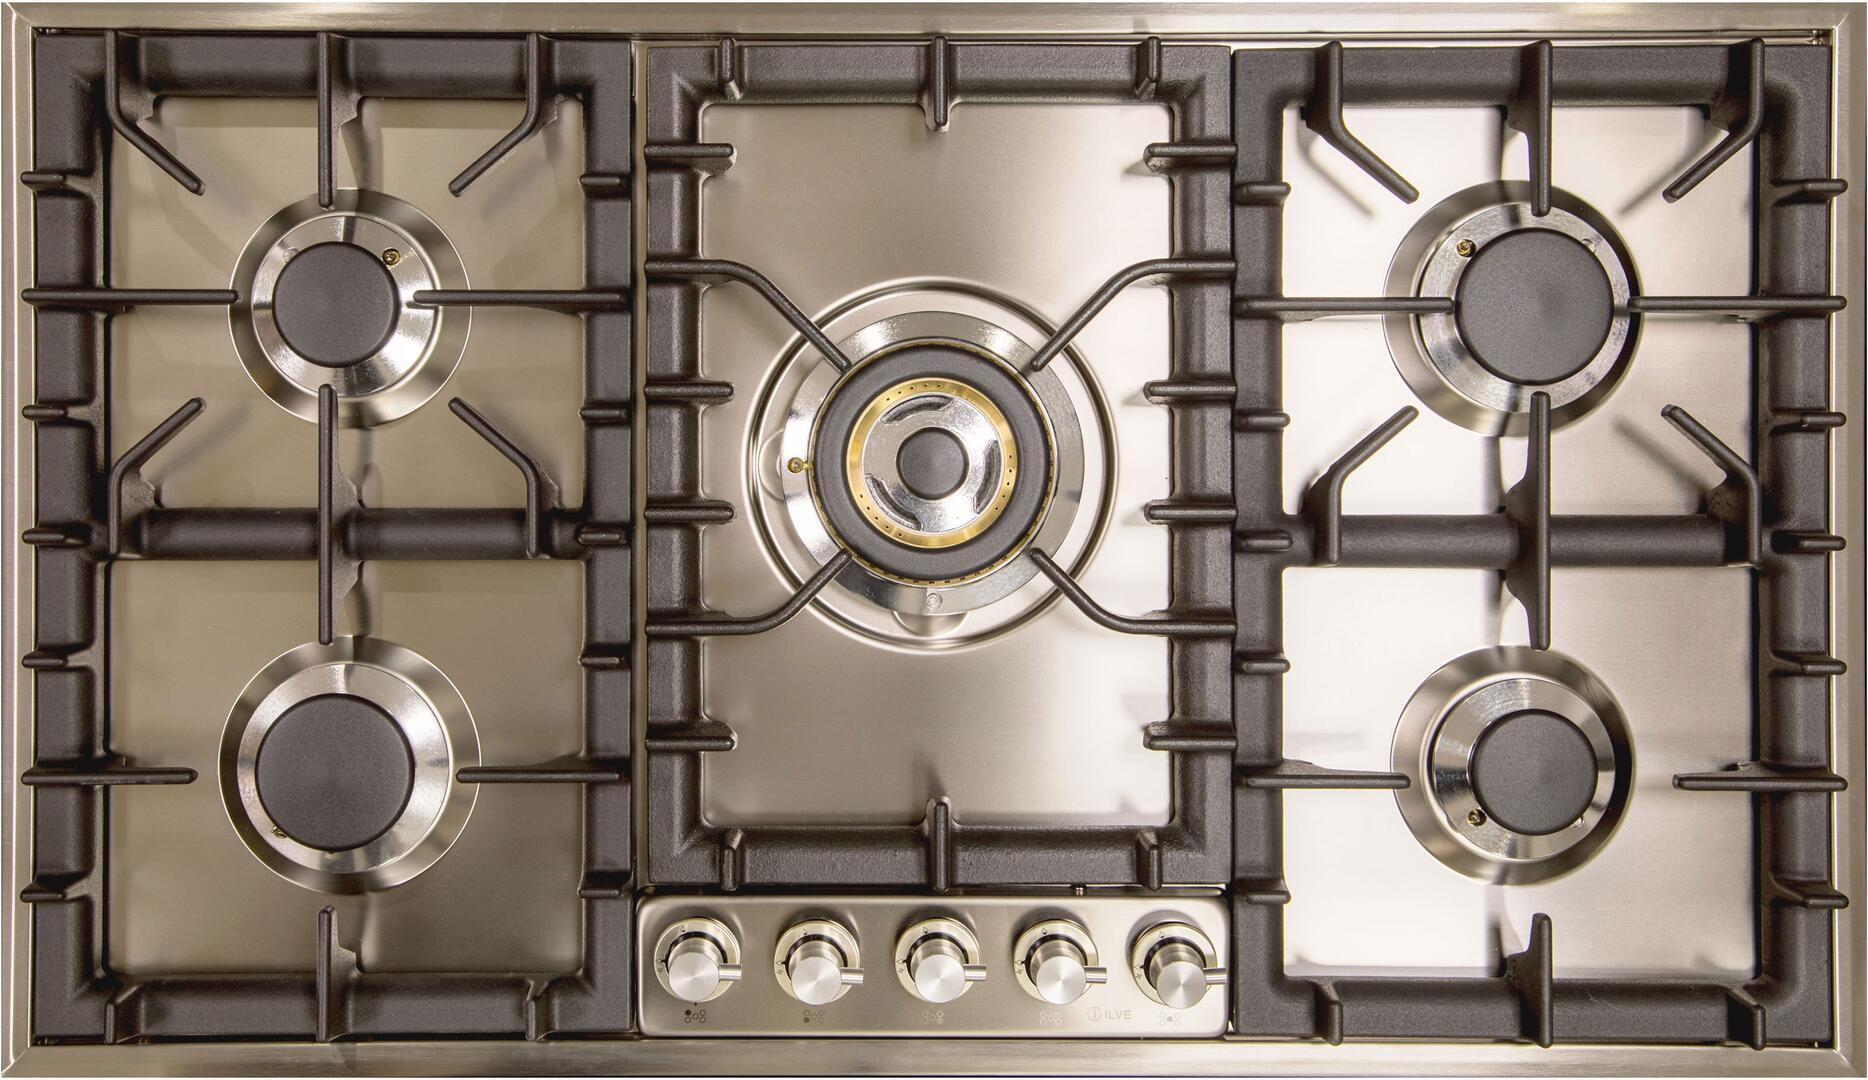 Ilve  UHP95CI Gas Cooktop Stainless Steel, UHP95C/I 5 Burner Cooktop